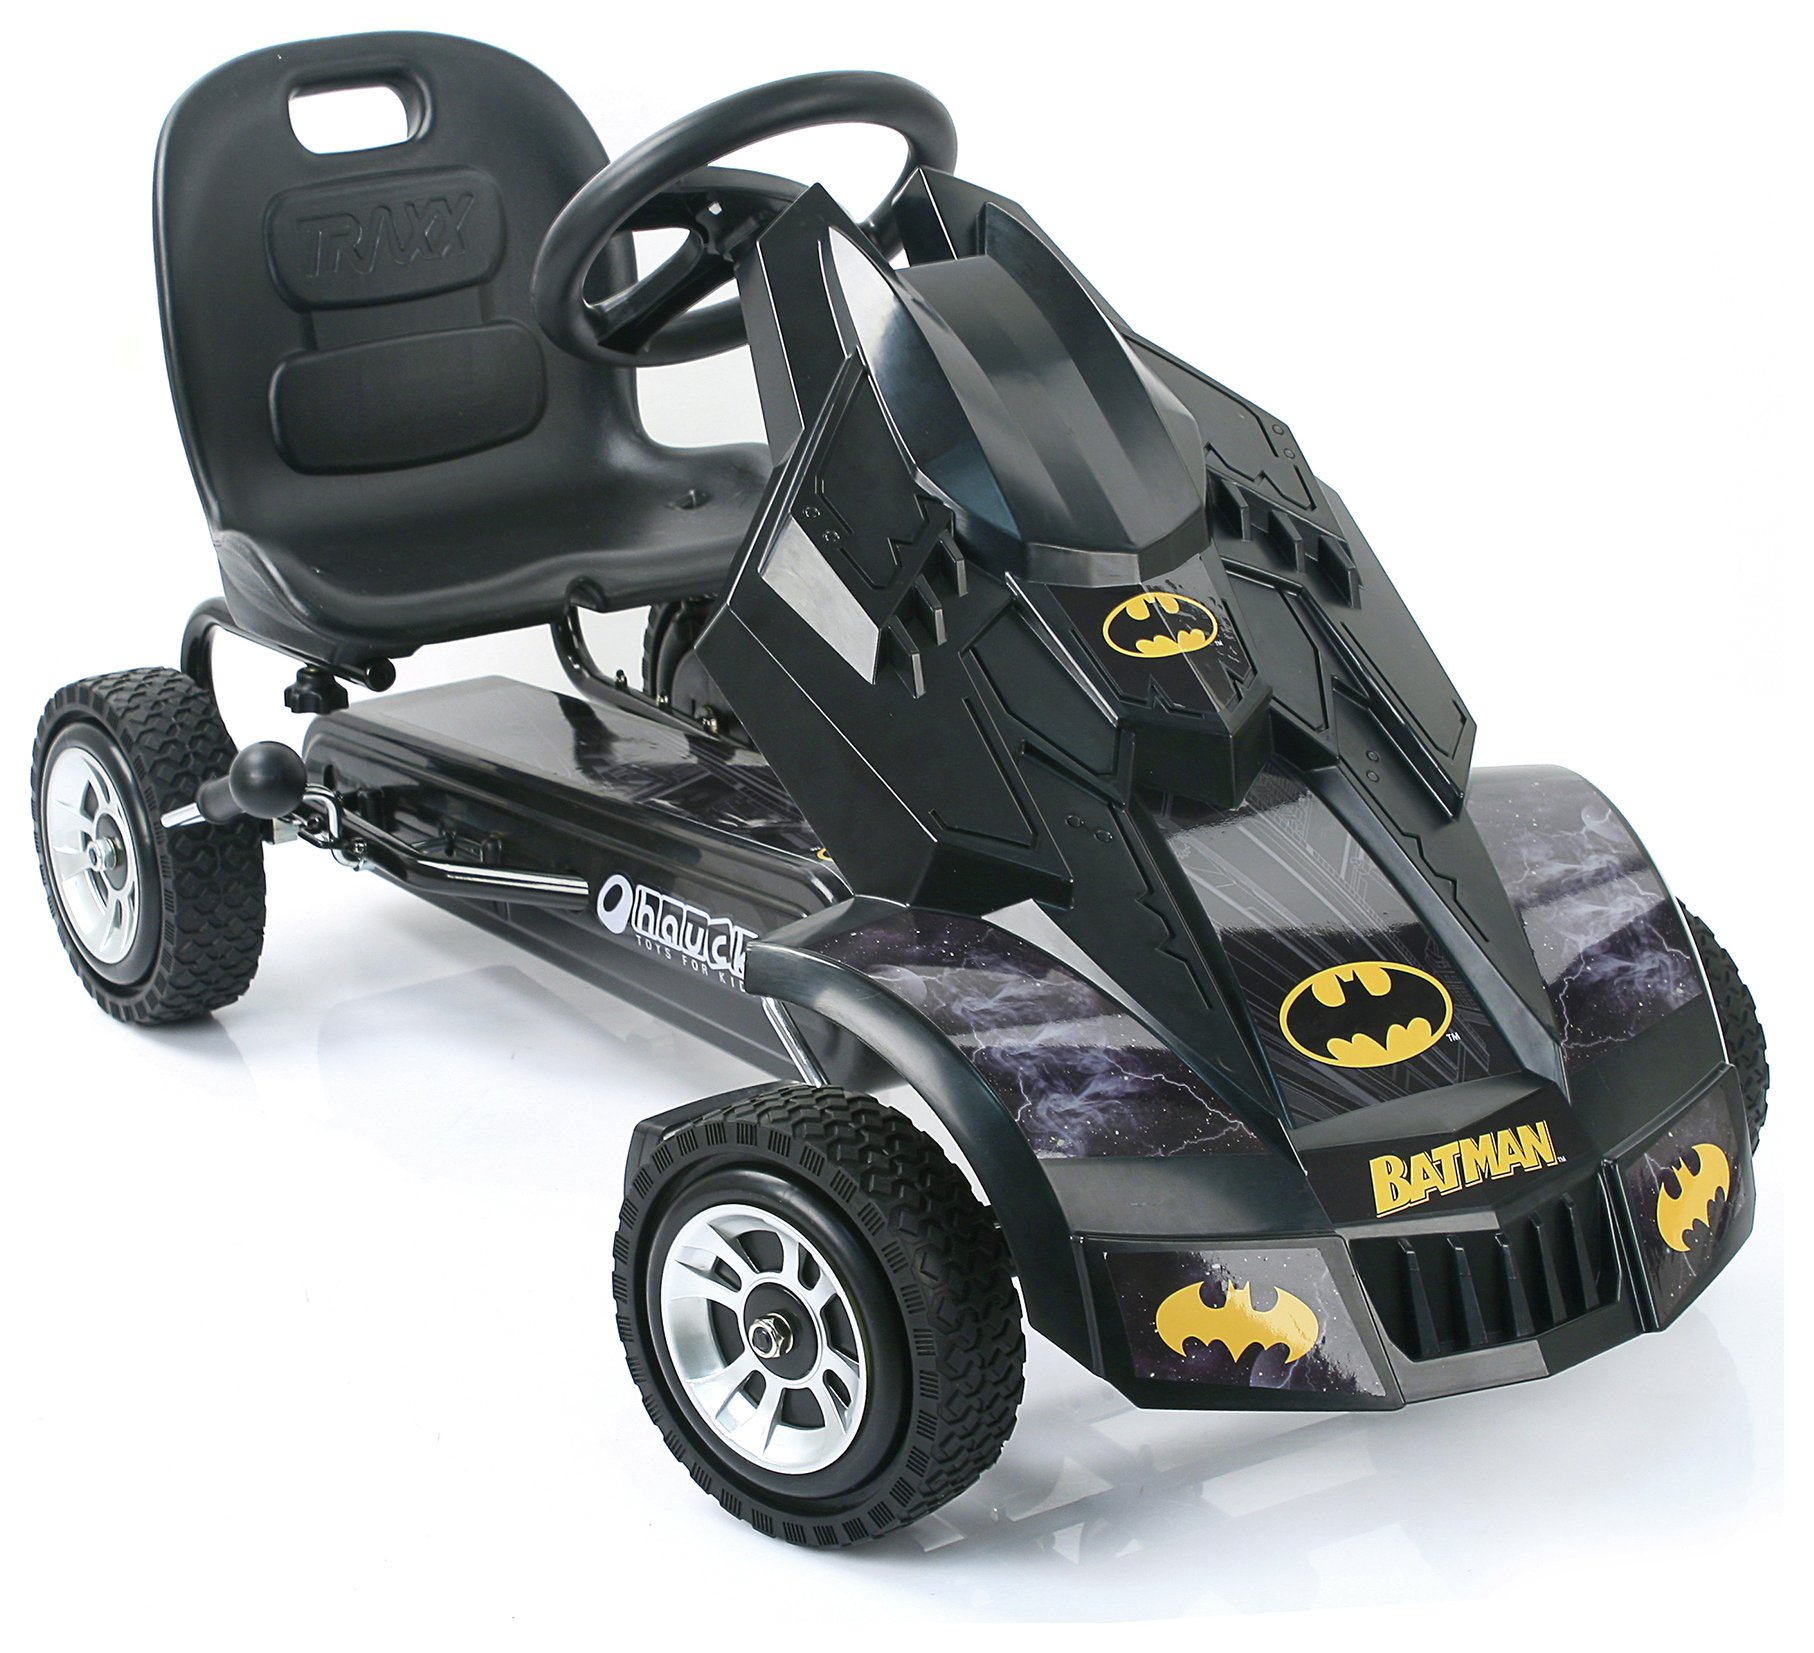 SALE On Batman Go Kart Batman Now Available Our Best